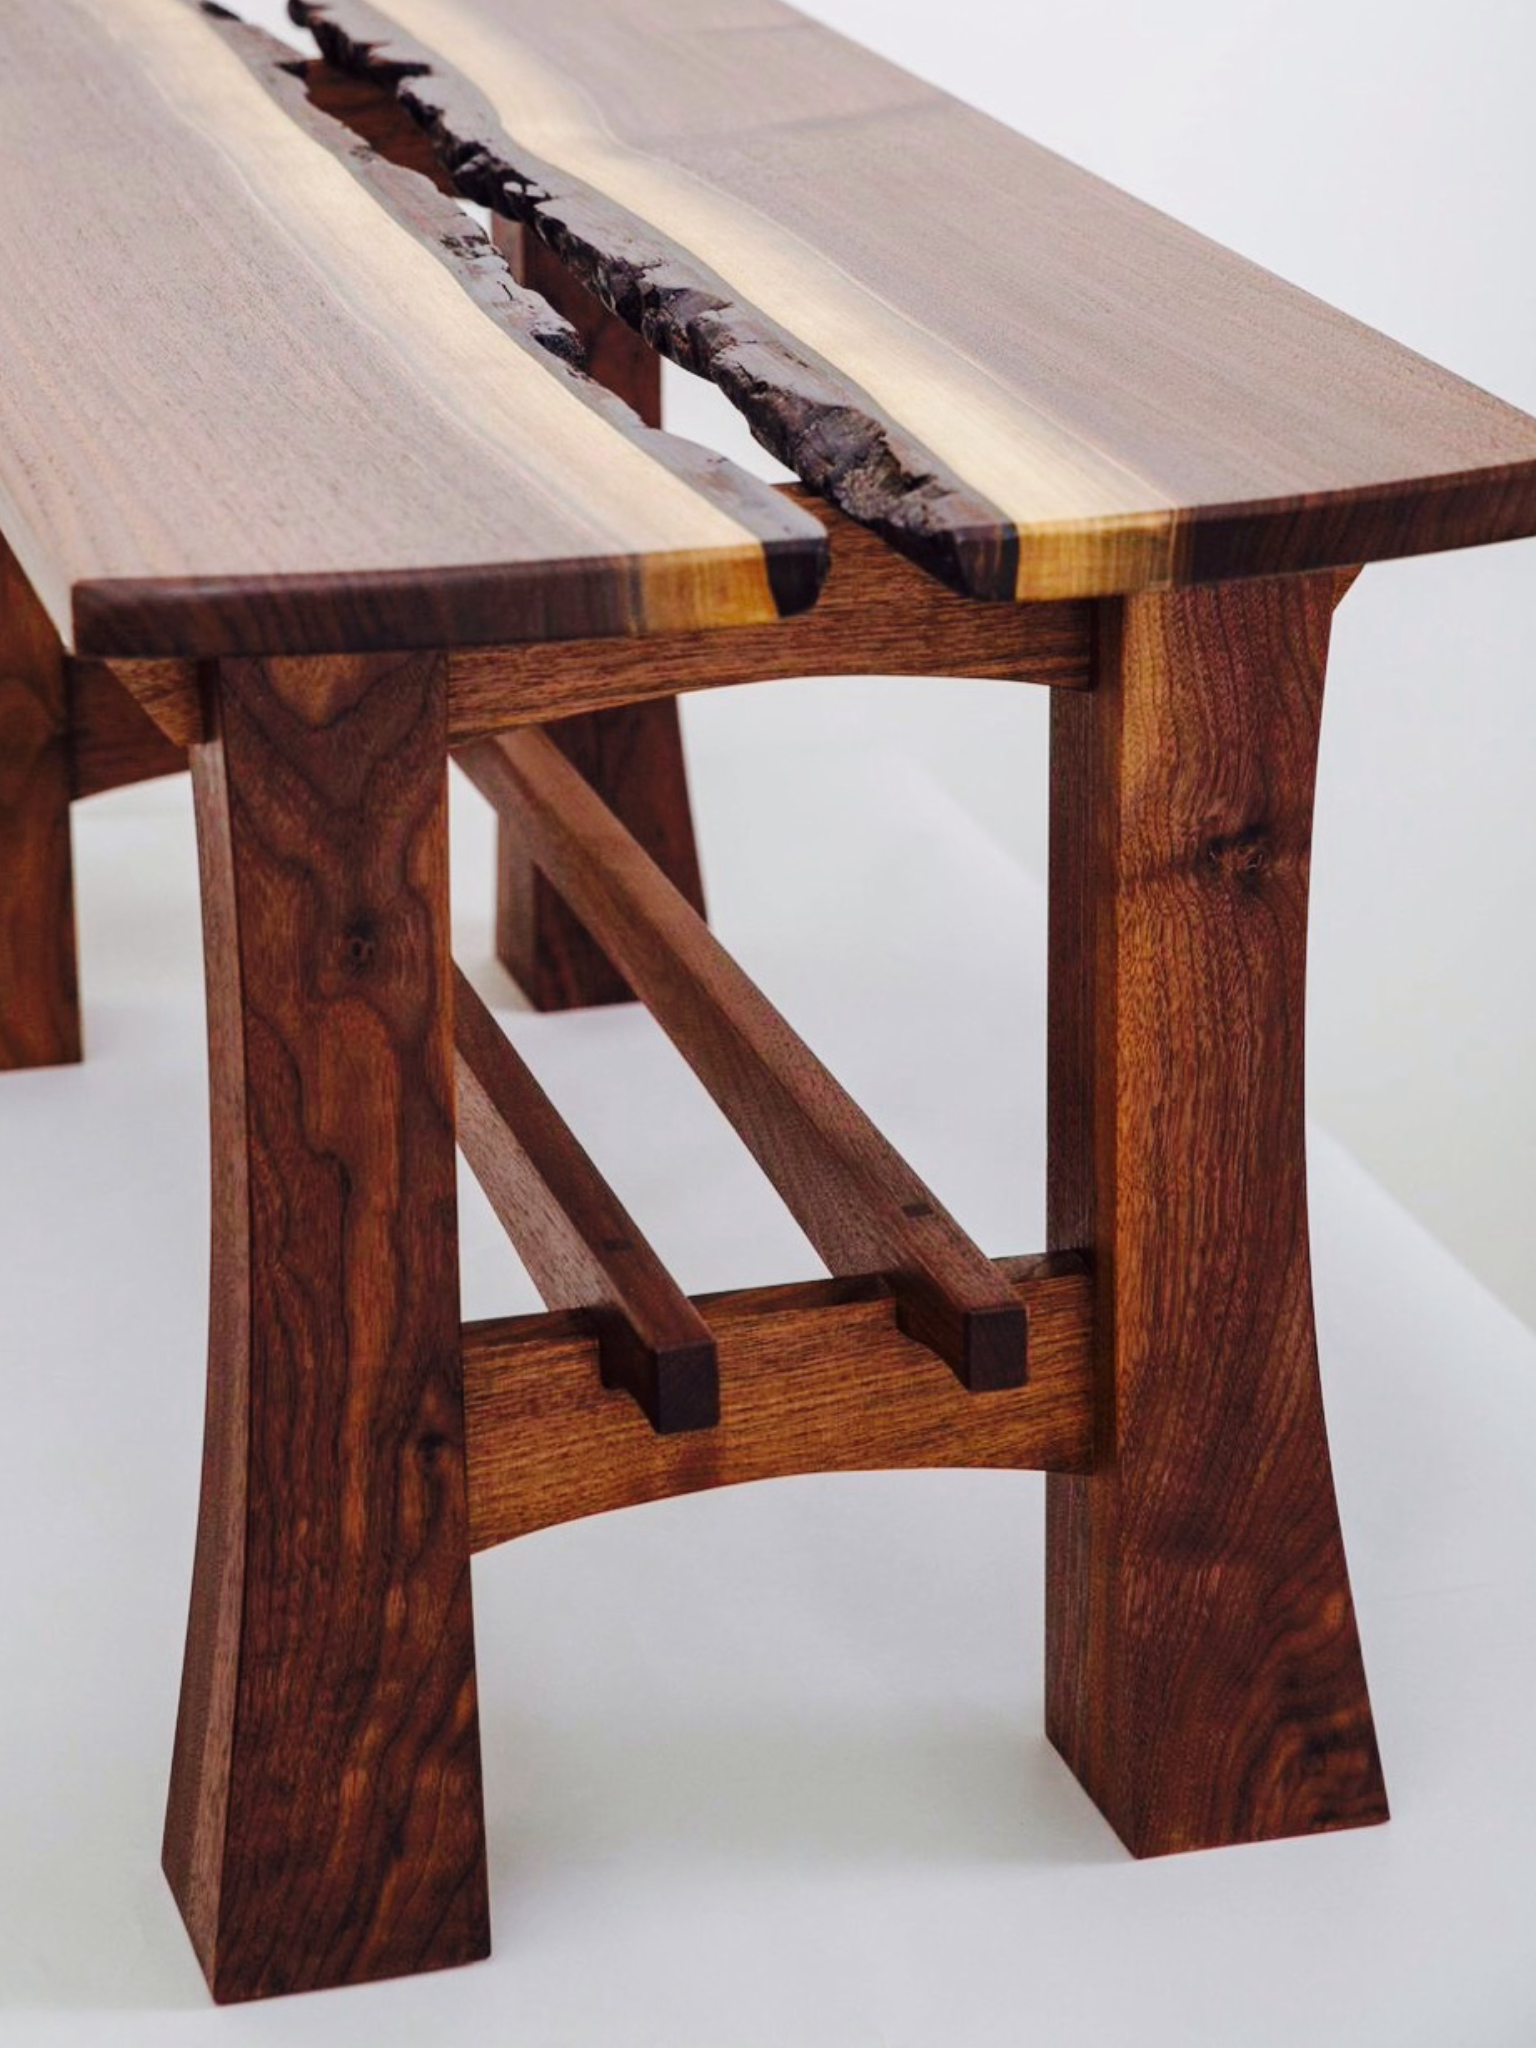 Pin by Bill Y on project ideas Timber furniture, Rustic